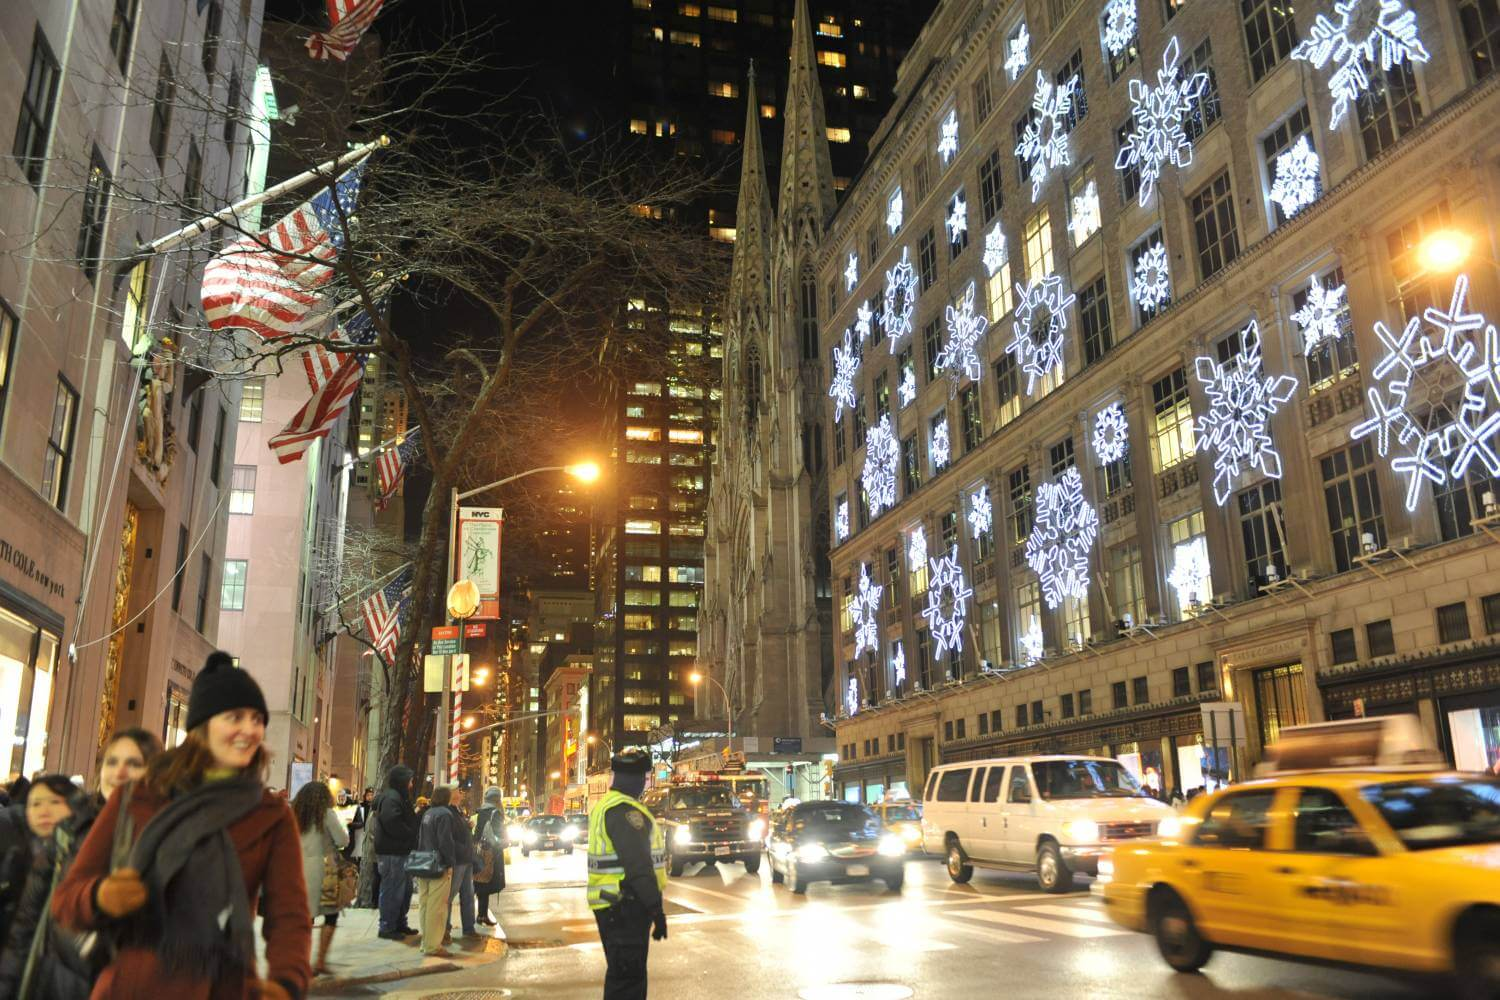 Fifth Avenue Things to do in NYC